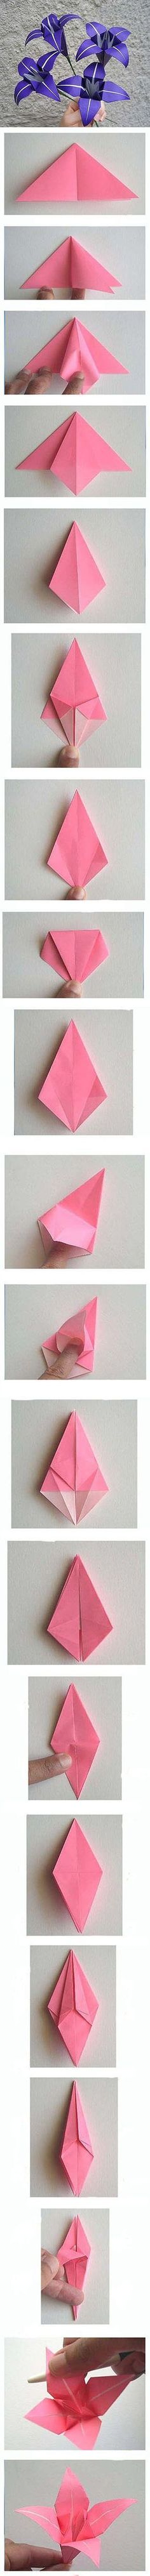 89 Best Origami Images On Pinterest In 2018 Paper Engineering Folding Diagram 1 Of 3 Scottish Terrier Dog Money Beautiful Flower Diy Crafts Tutorials Simple Oragami